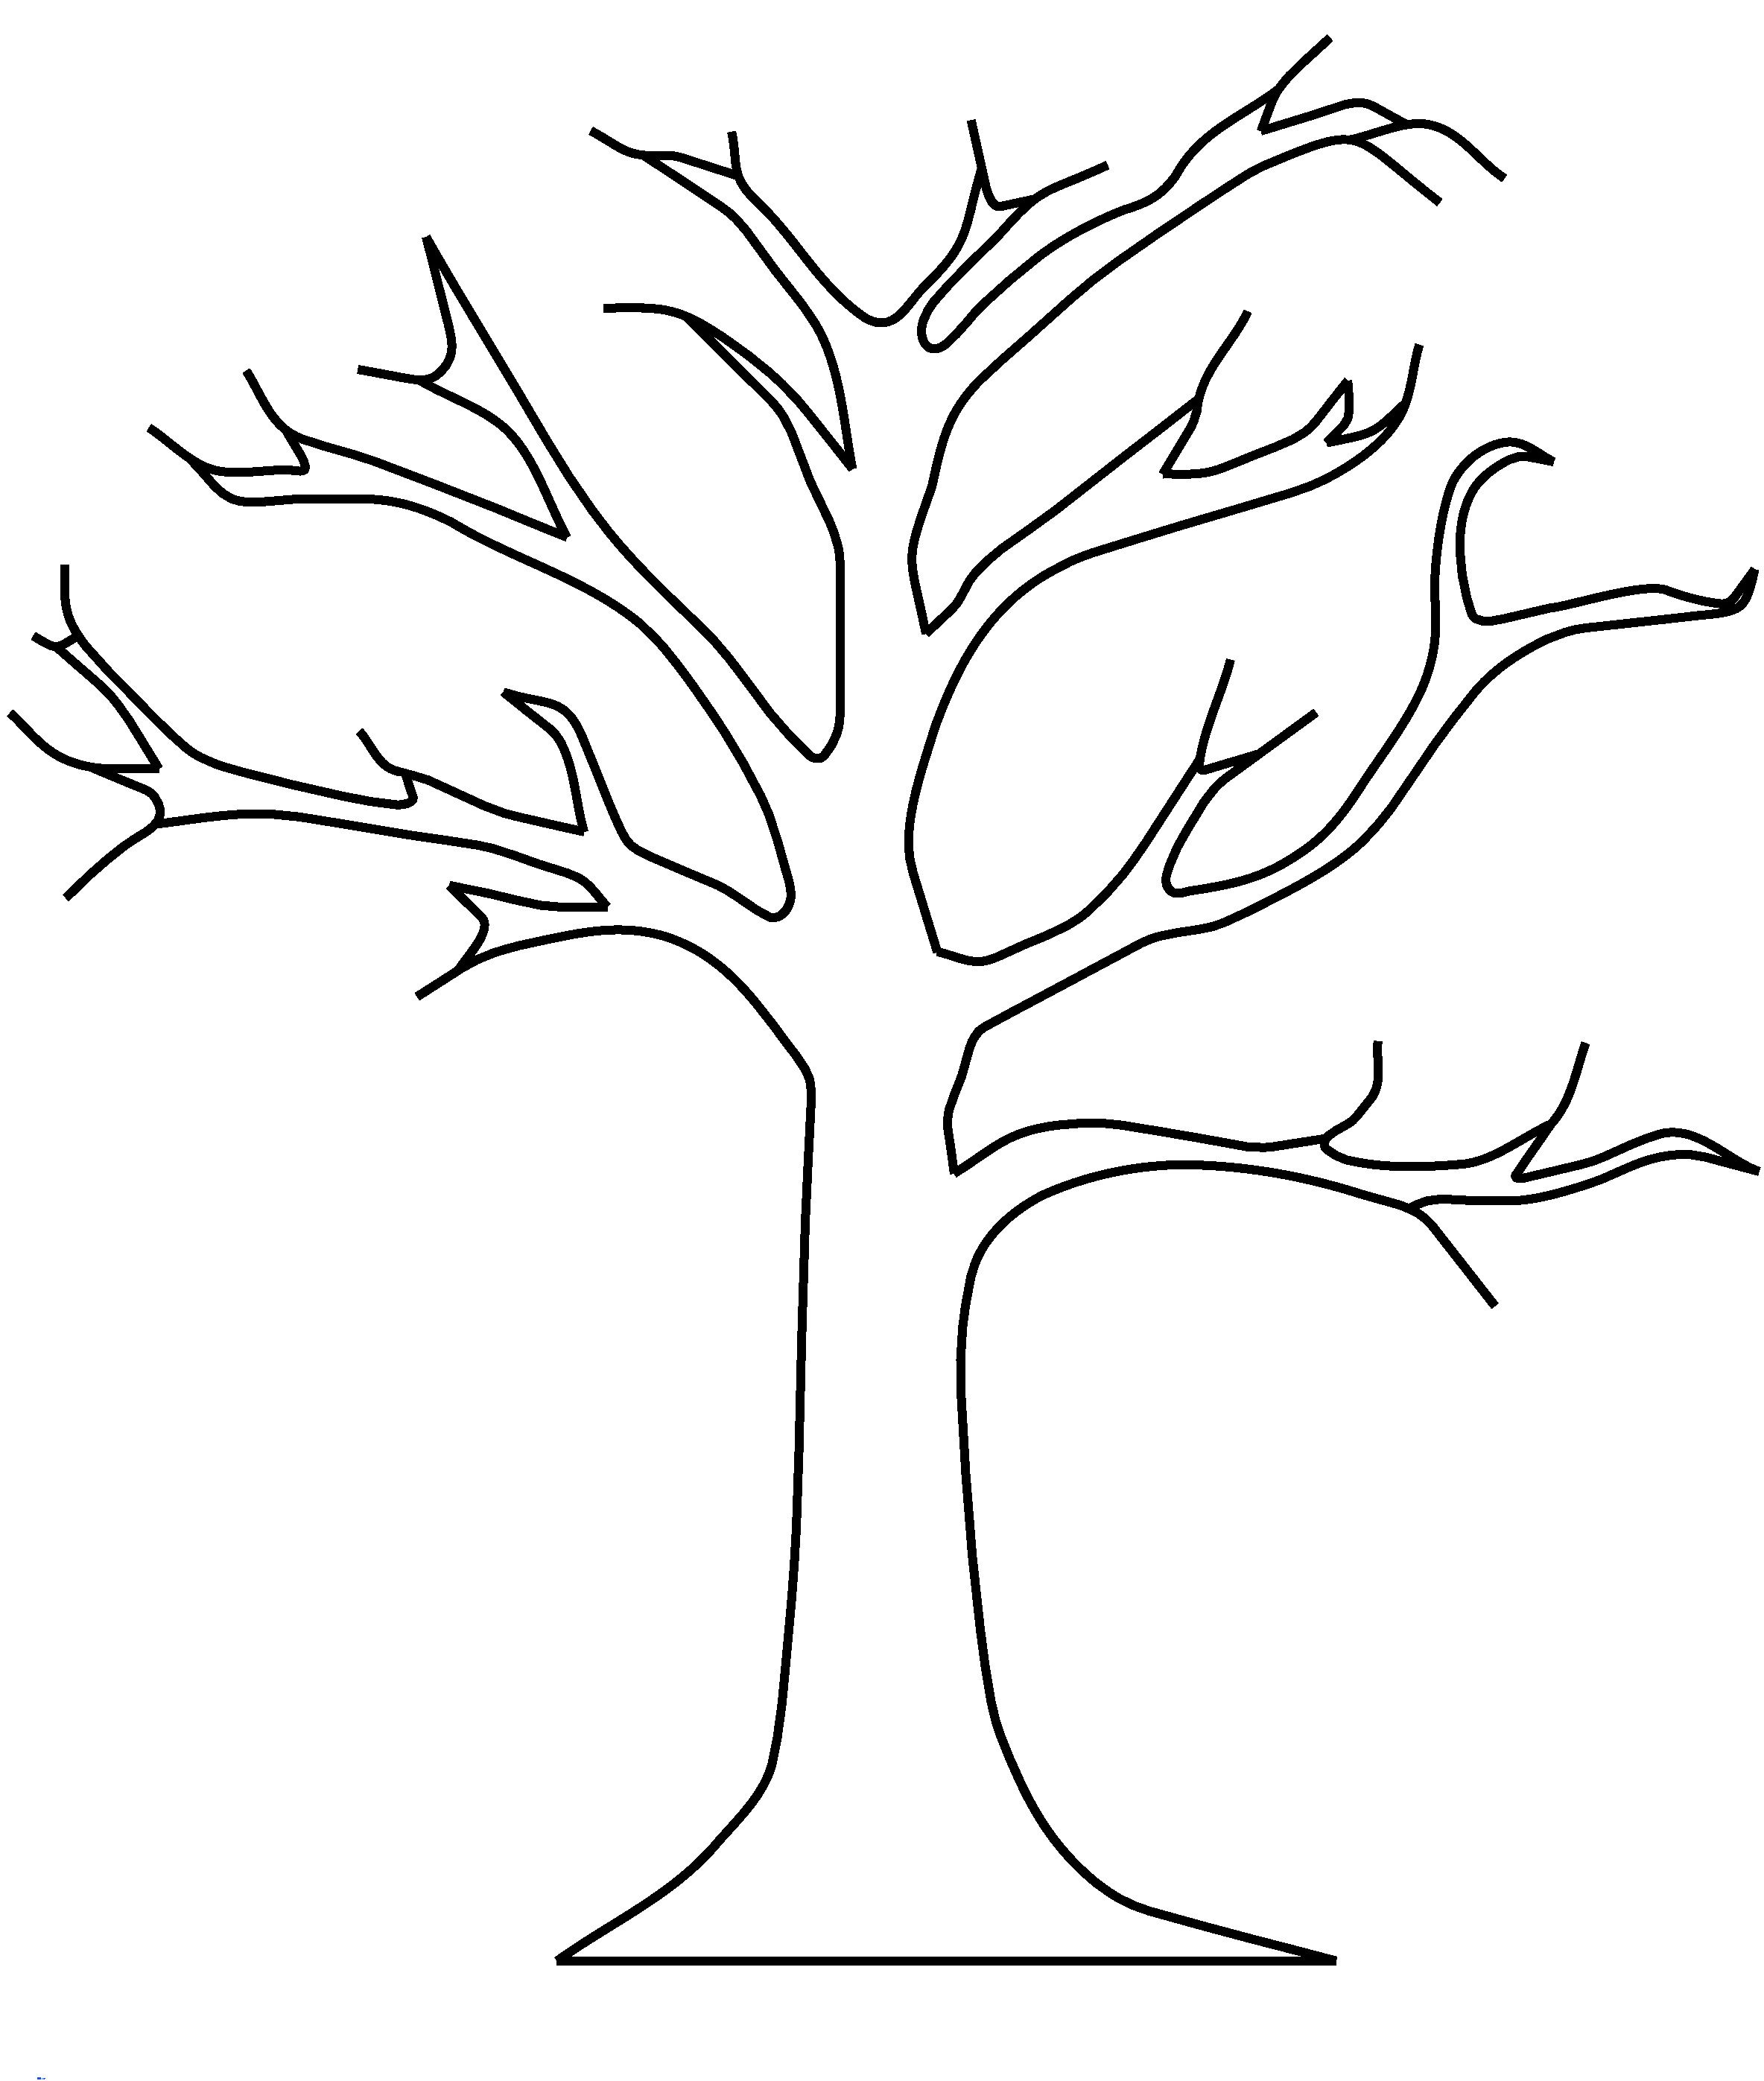 apple tree template dgn apple tree without leaves coloring pages